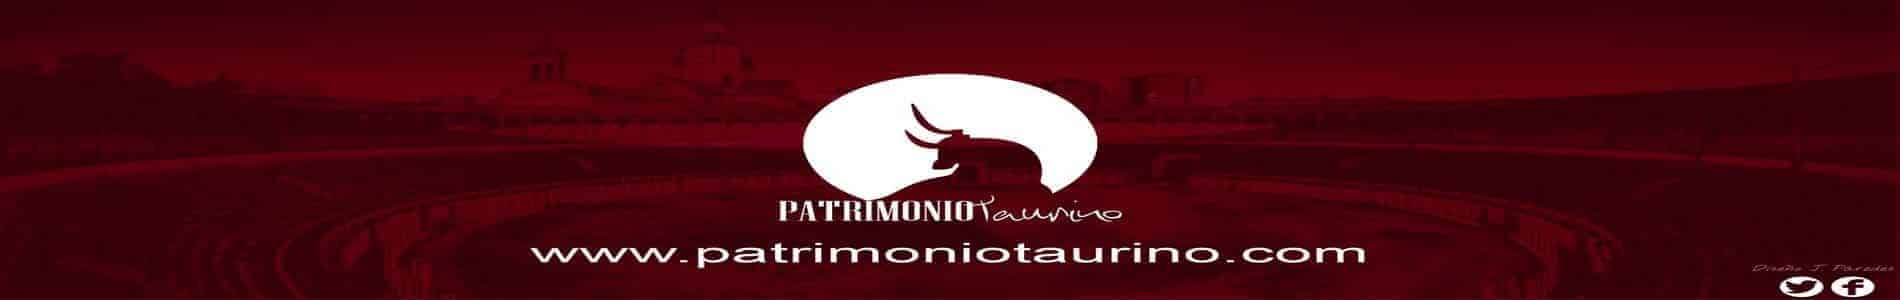 Patrimonio Taurino